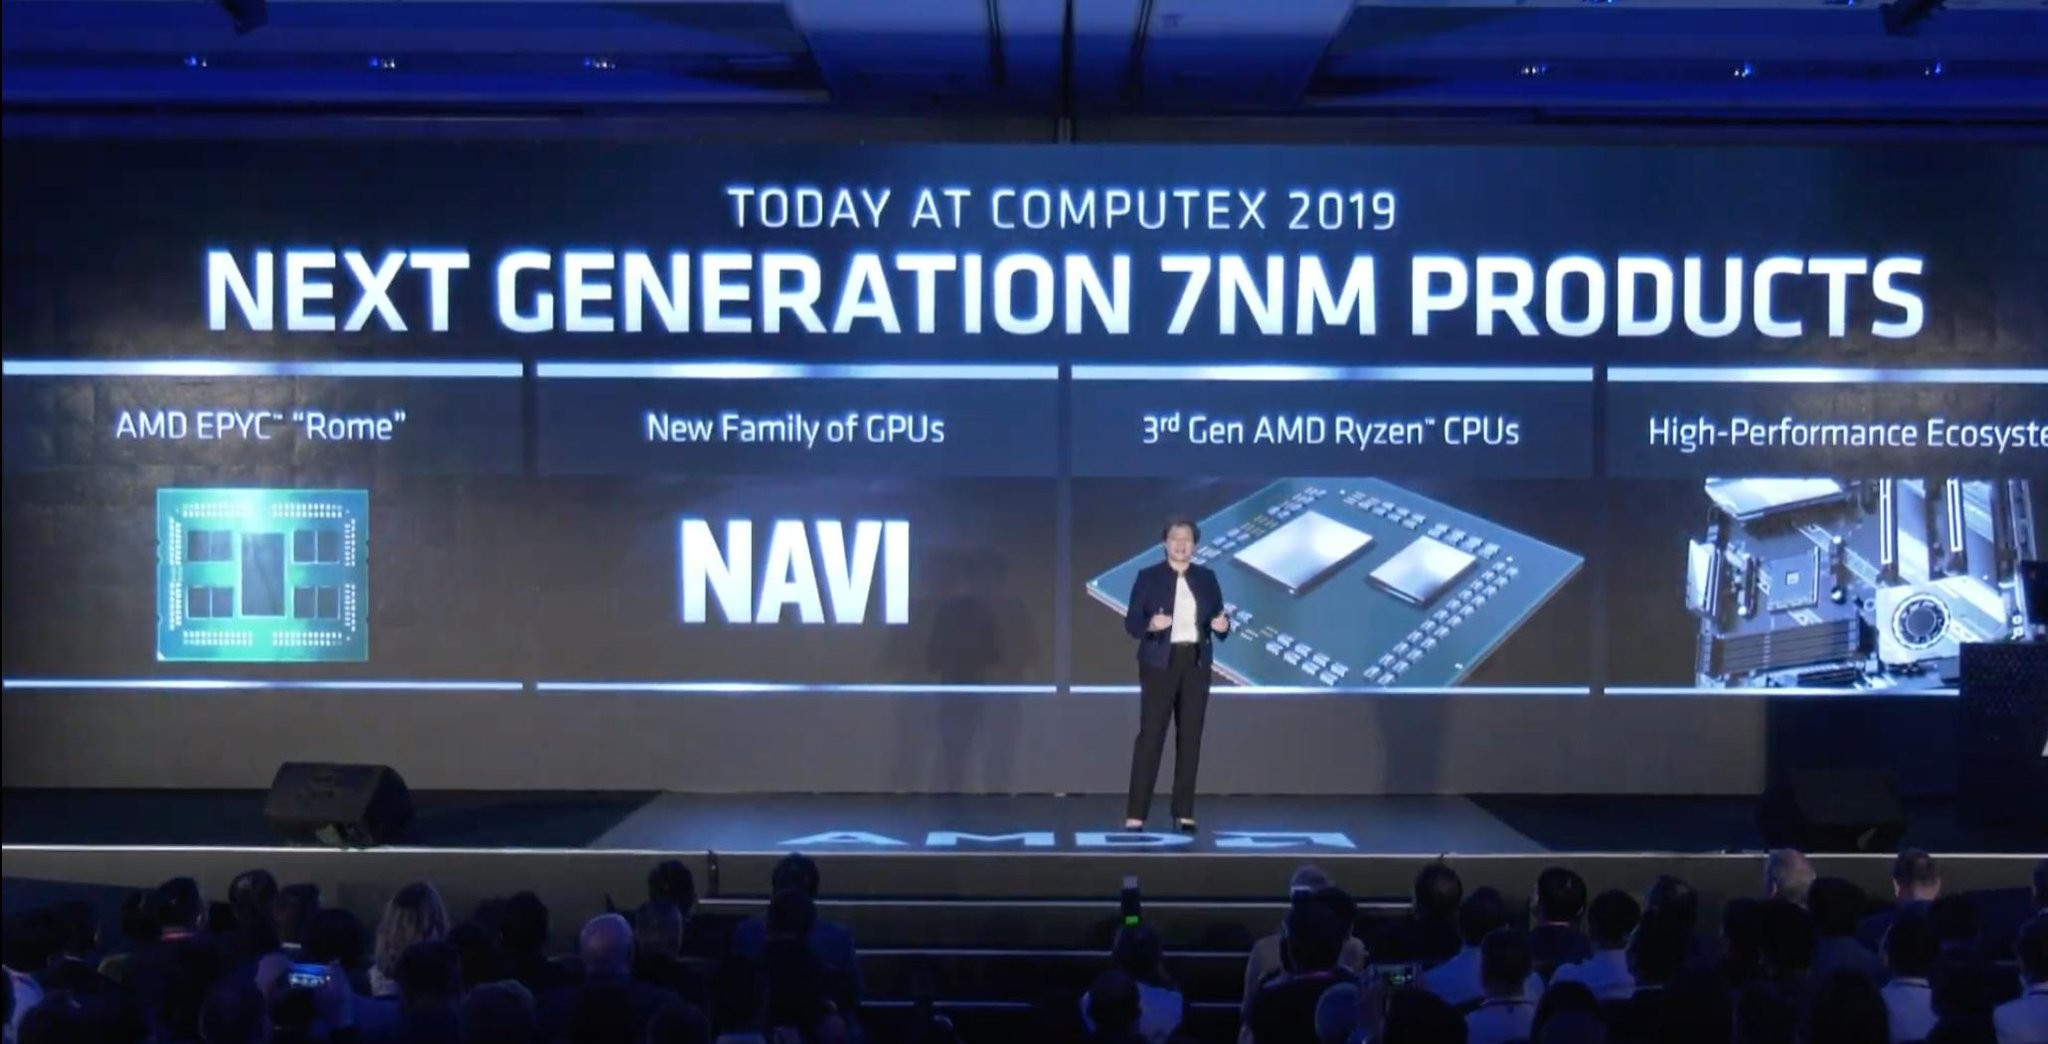 AMD announces its 7nm Ryzen 3000 CPU and Radeon 5000 GPU